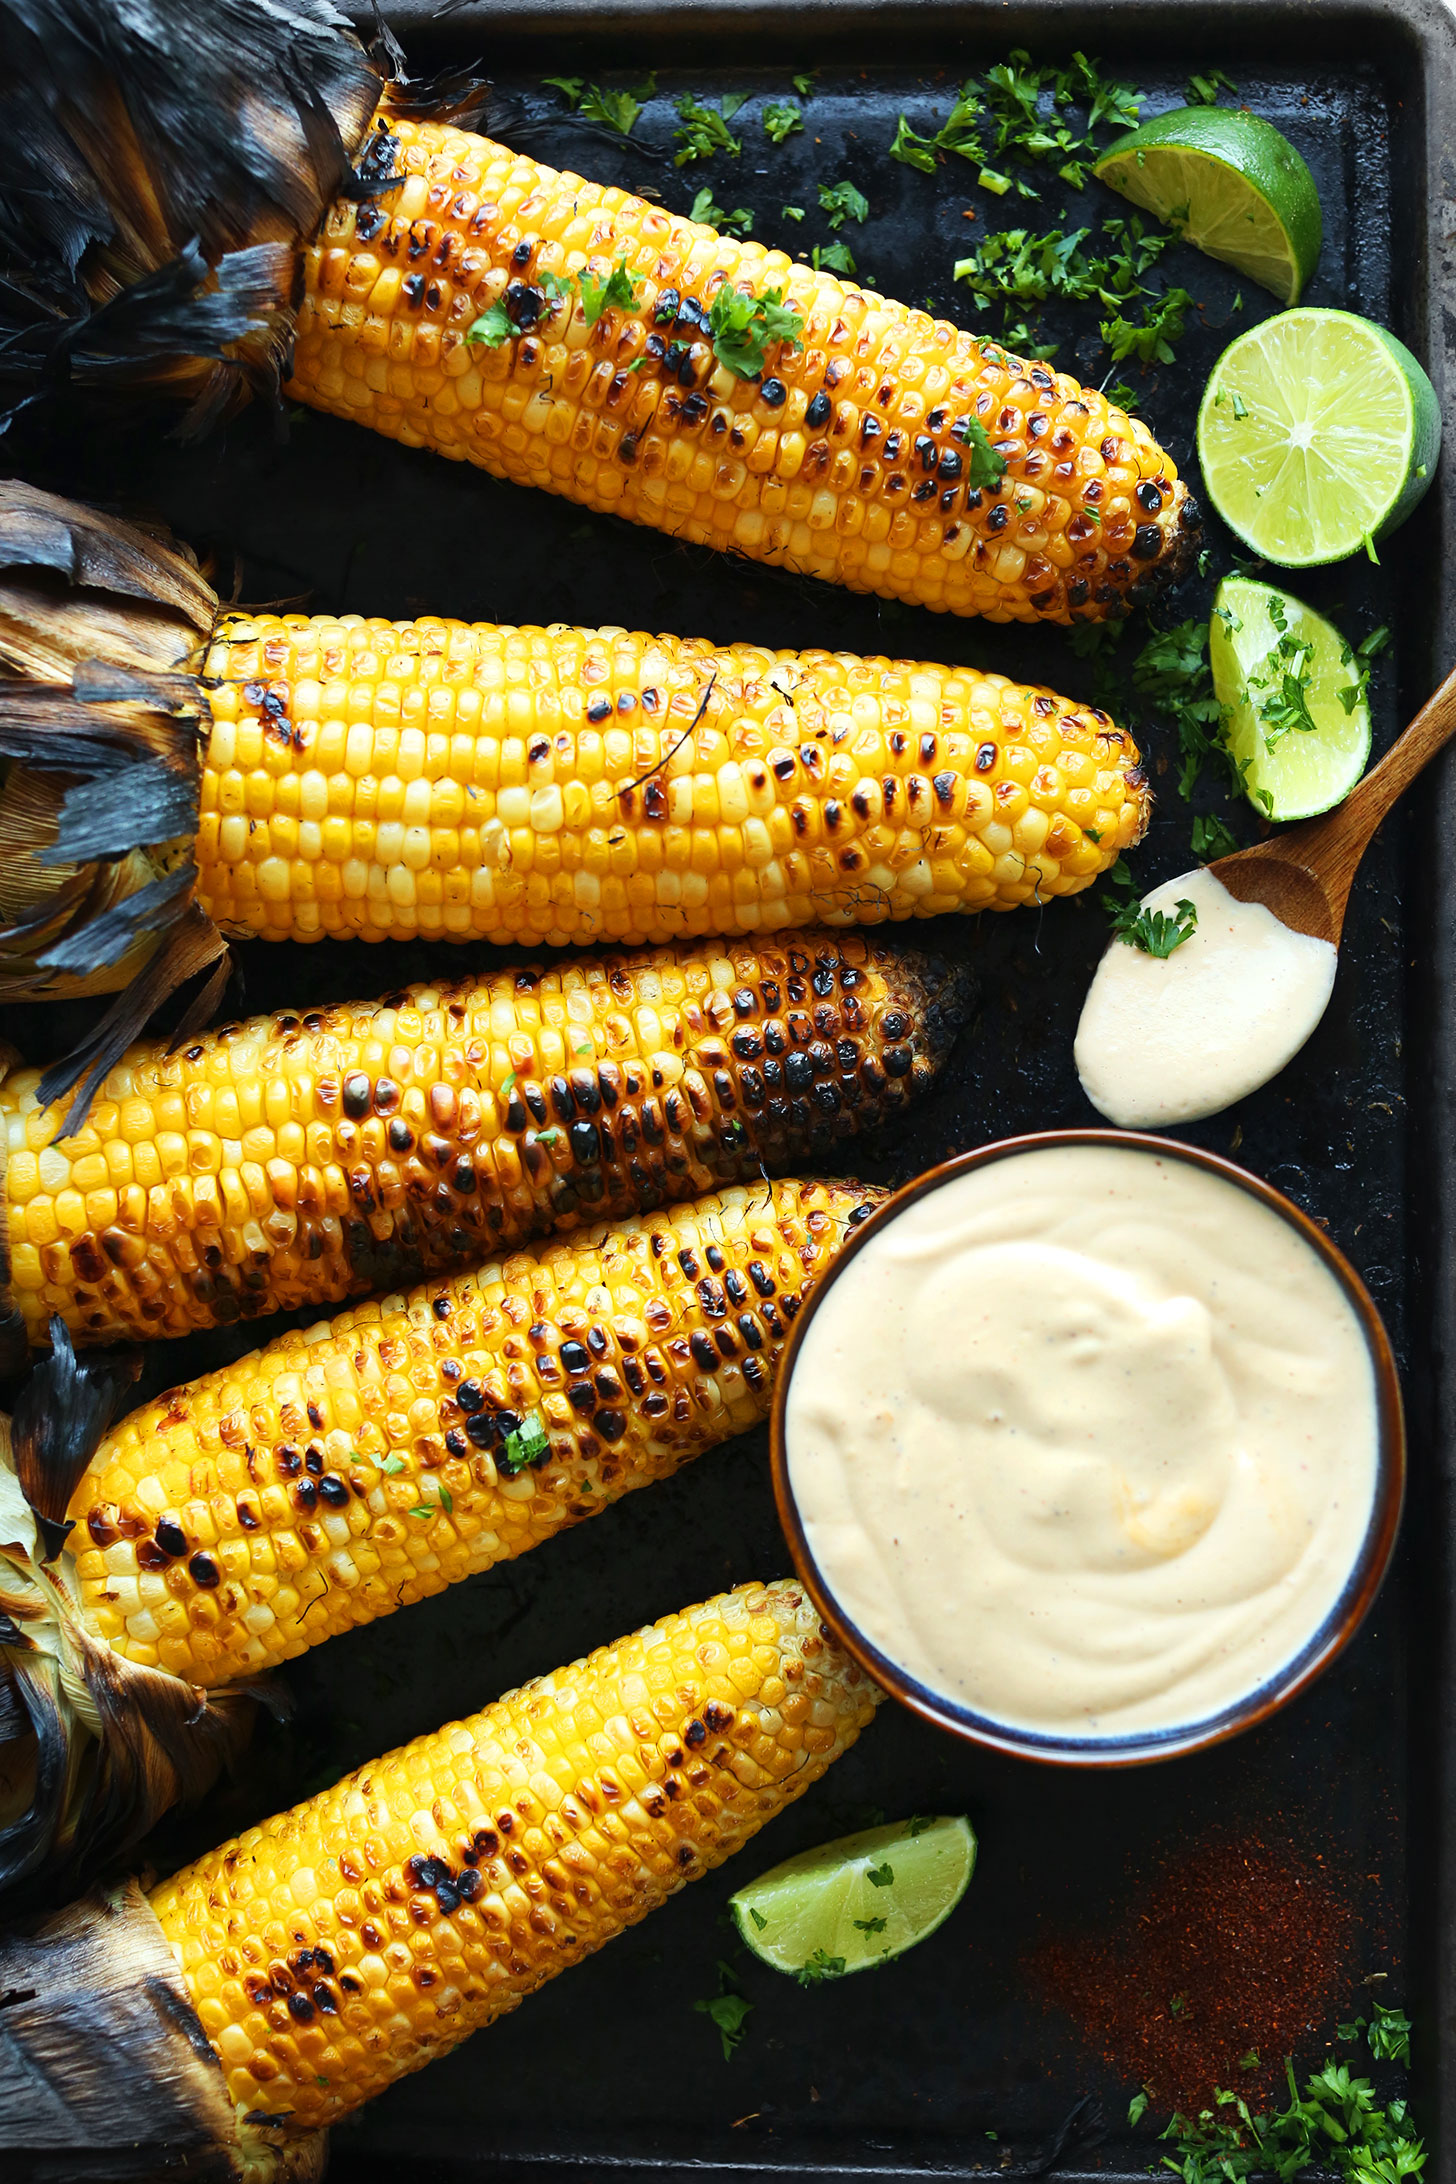 Baking sheet with grilled corn on the cob and sriracha aioli for a perfect summer BBQ dish